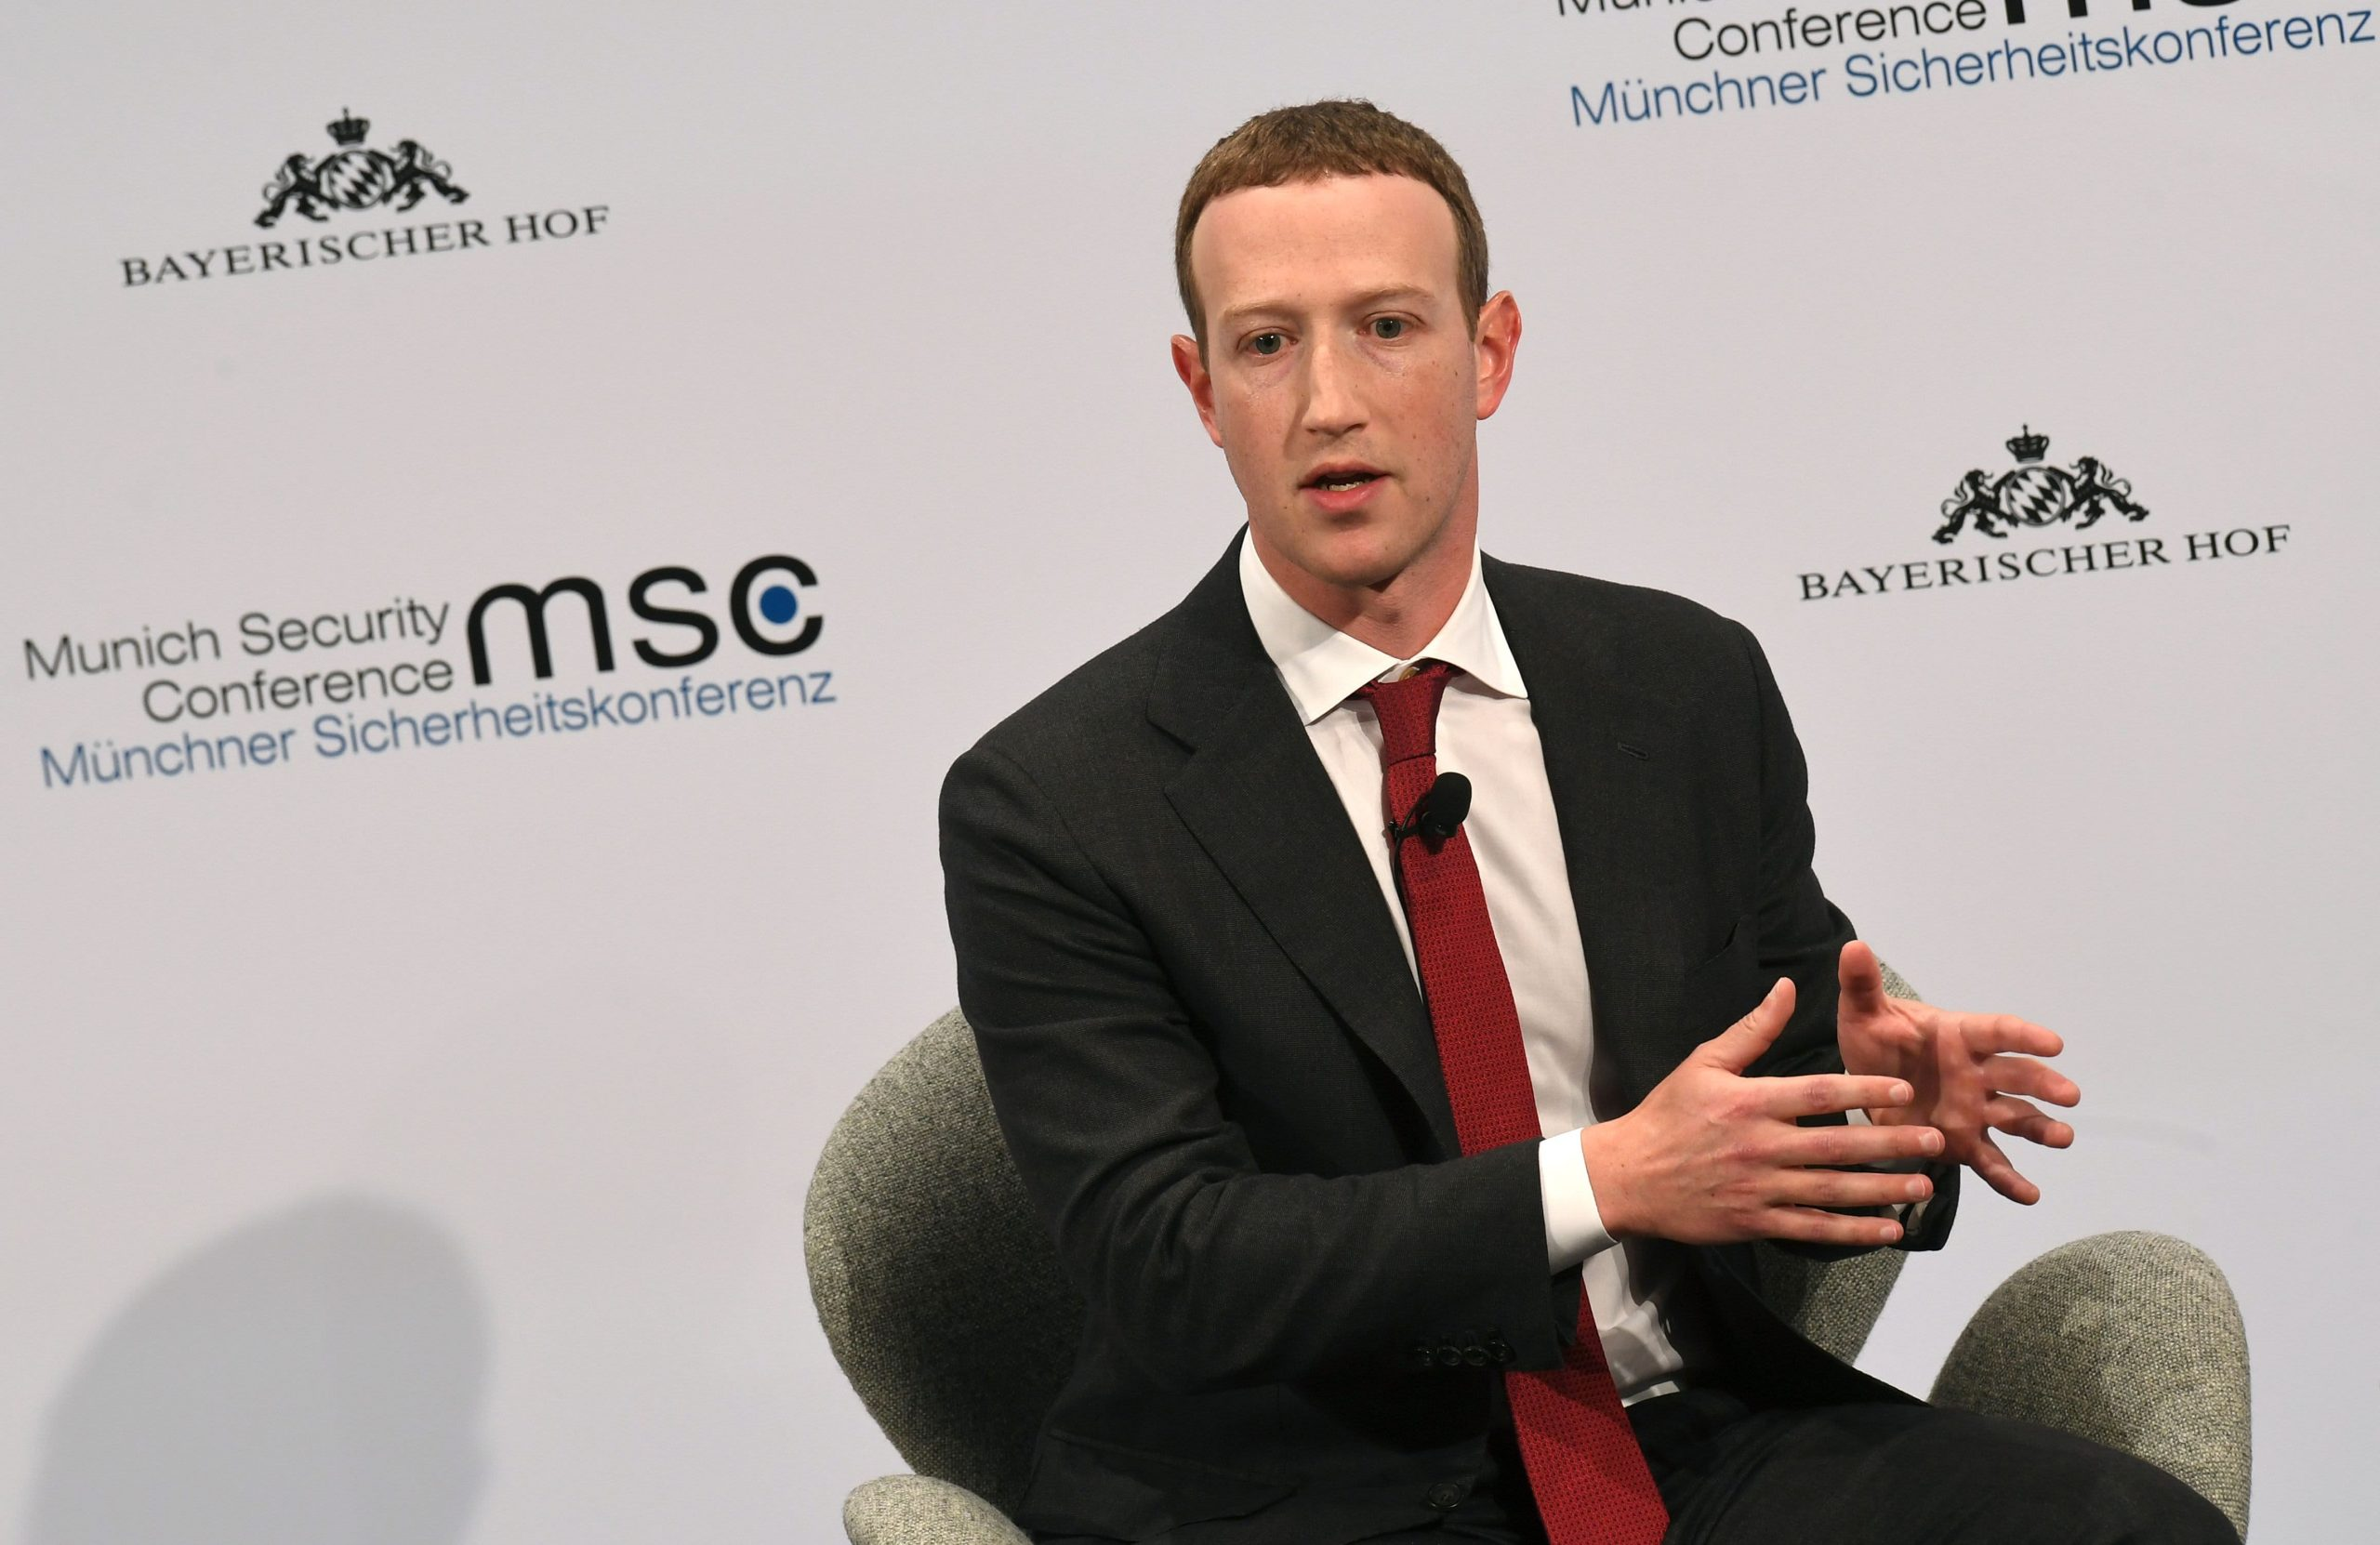 Facebook won't take a cut from creators until 2023, Zuckerberg says in shot at Apple